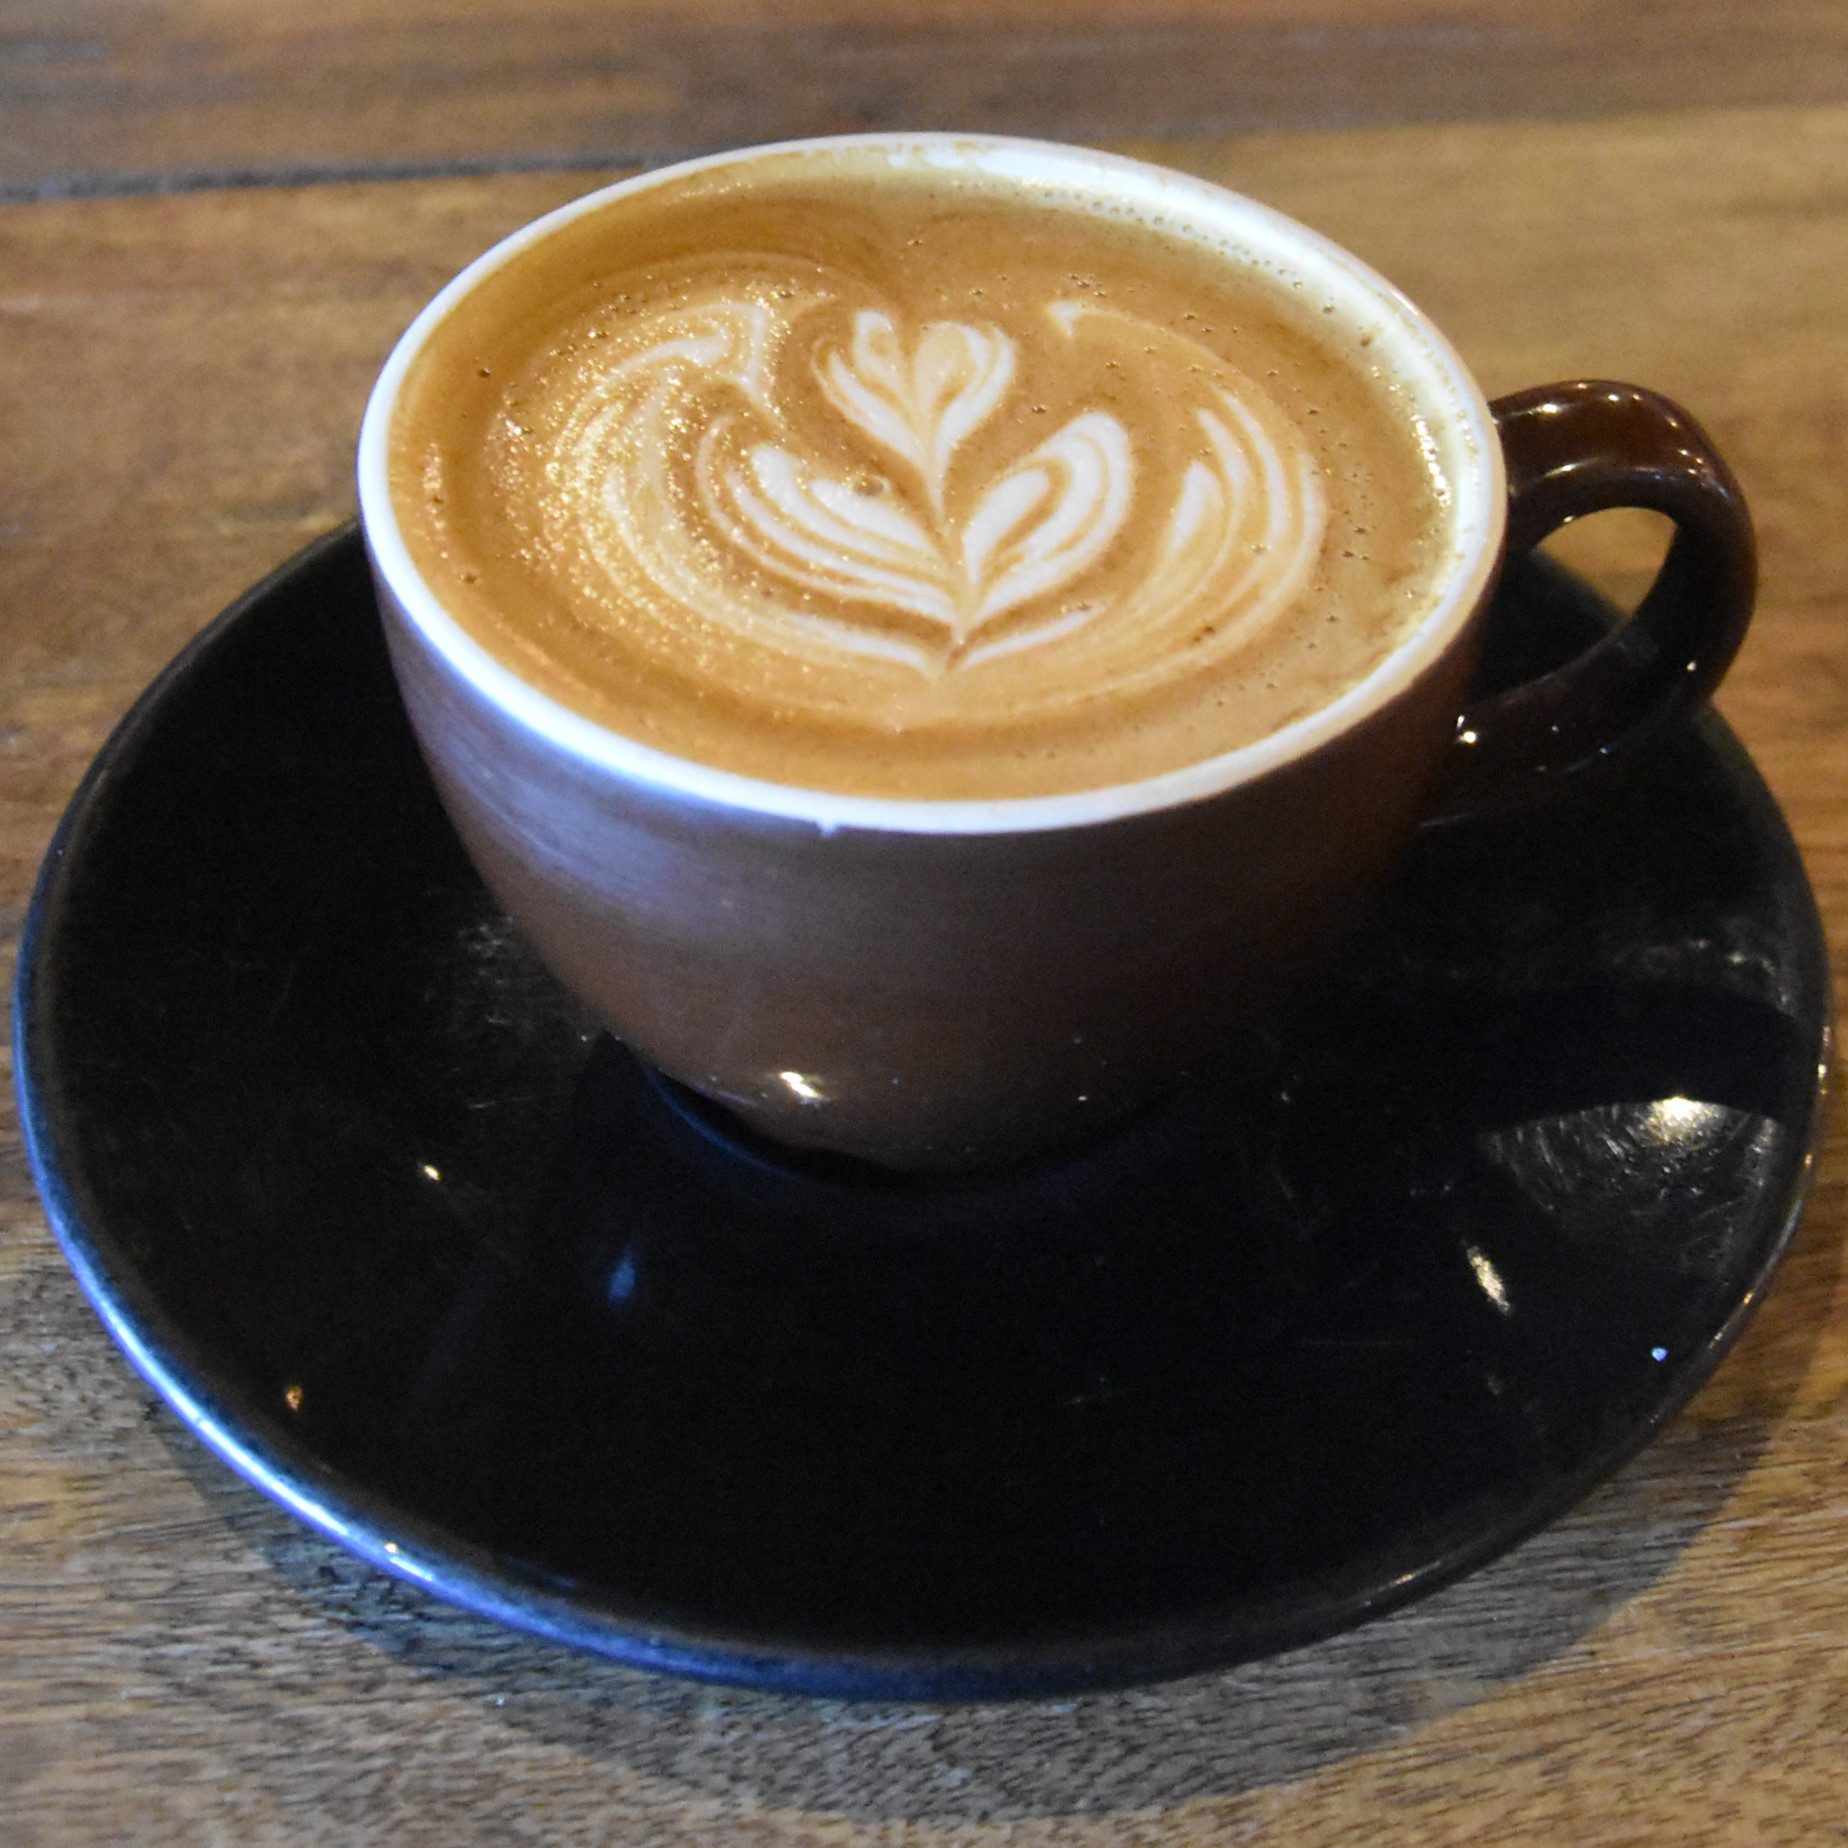 A lovely flat white, made with the guest espresso, the Runaway Blend from Yellow Brick Coffee in Tucson and served at Maverick Coffee in Phoenix.